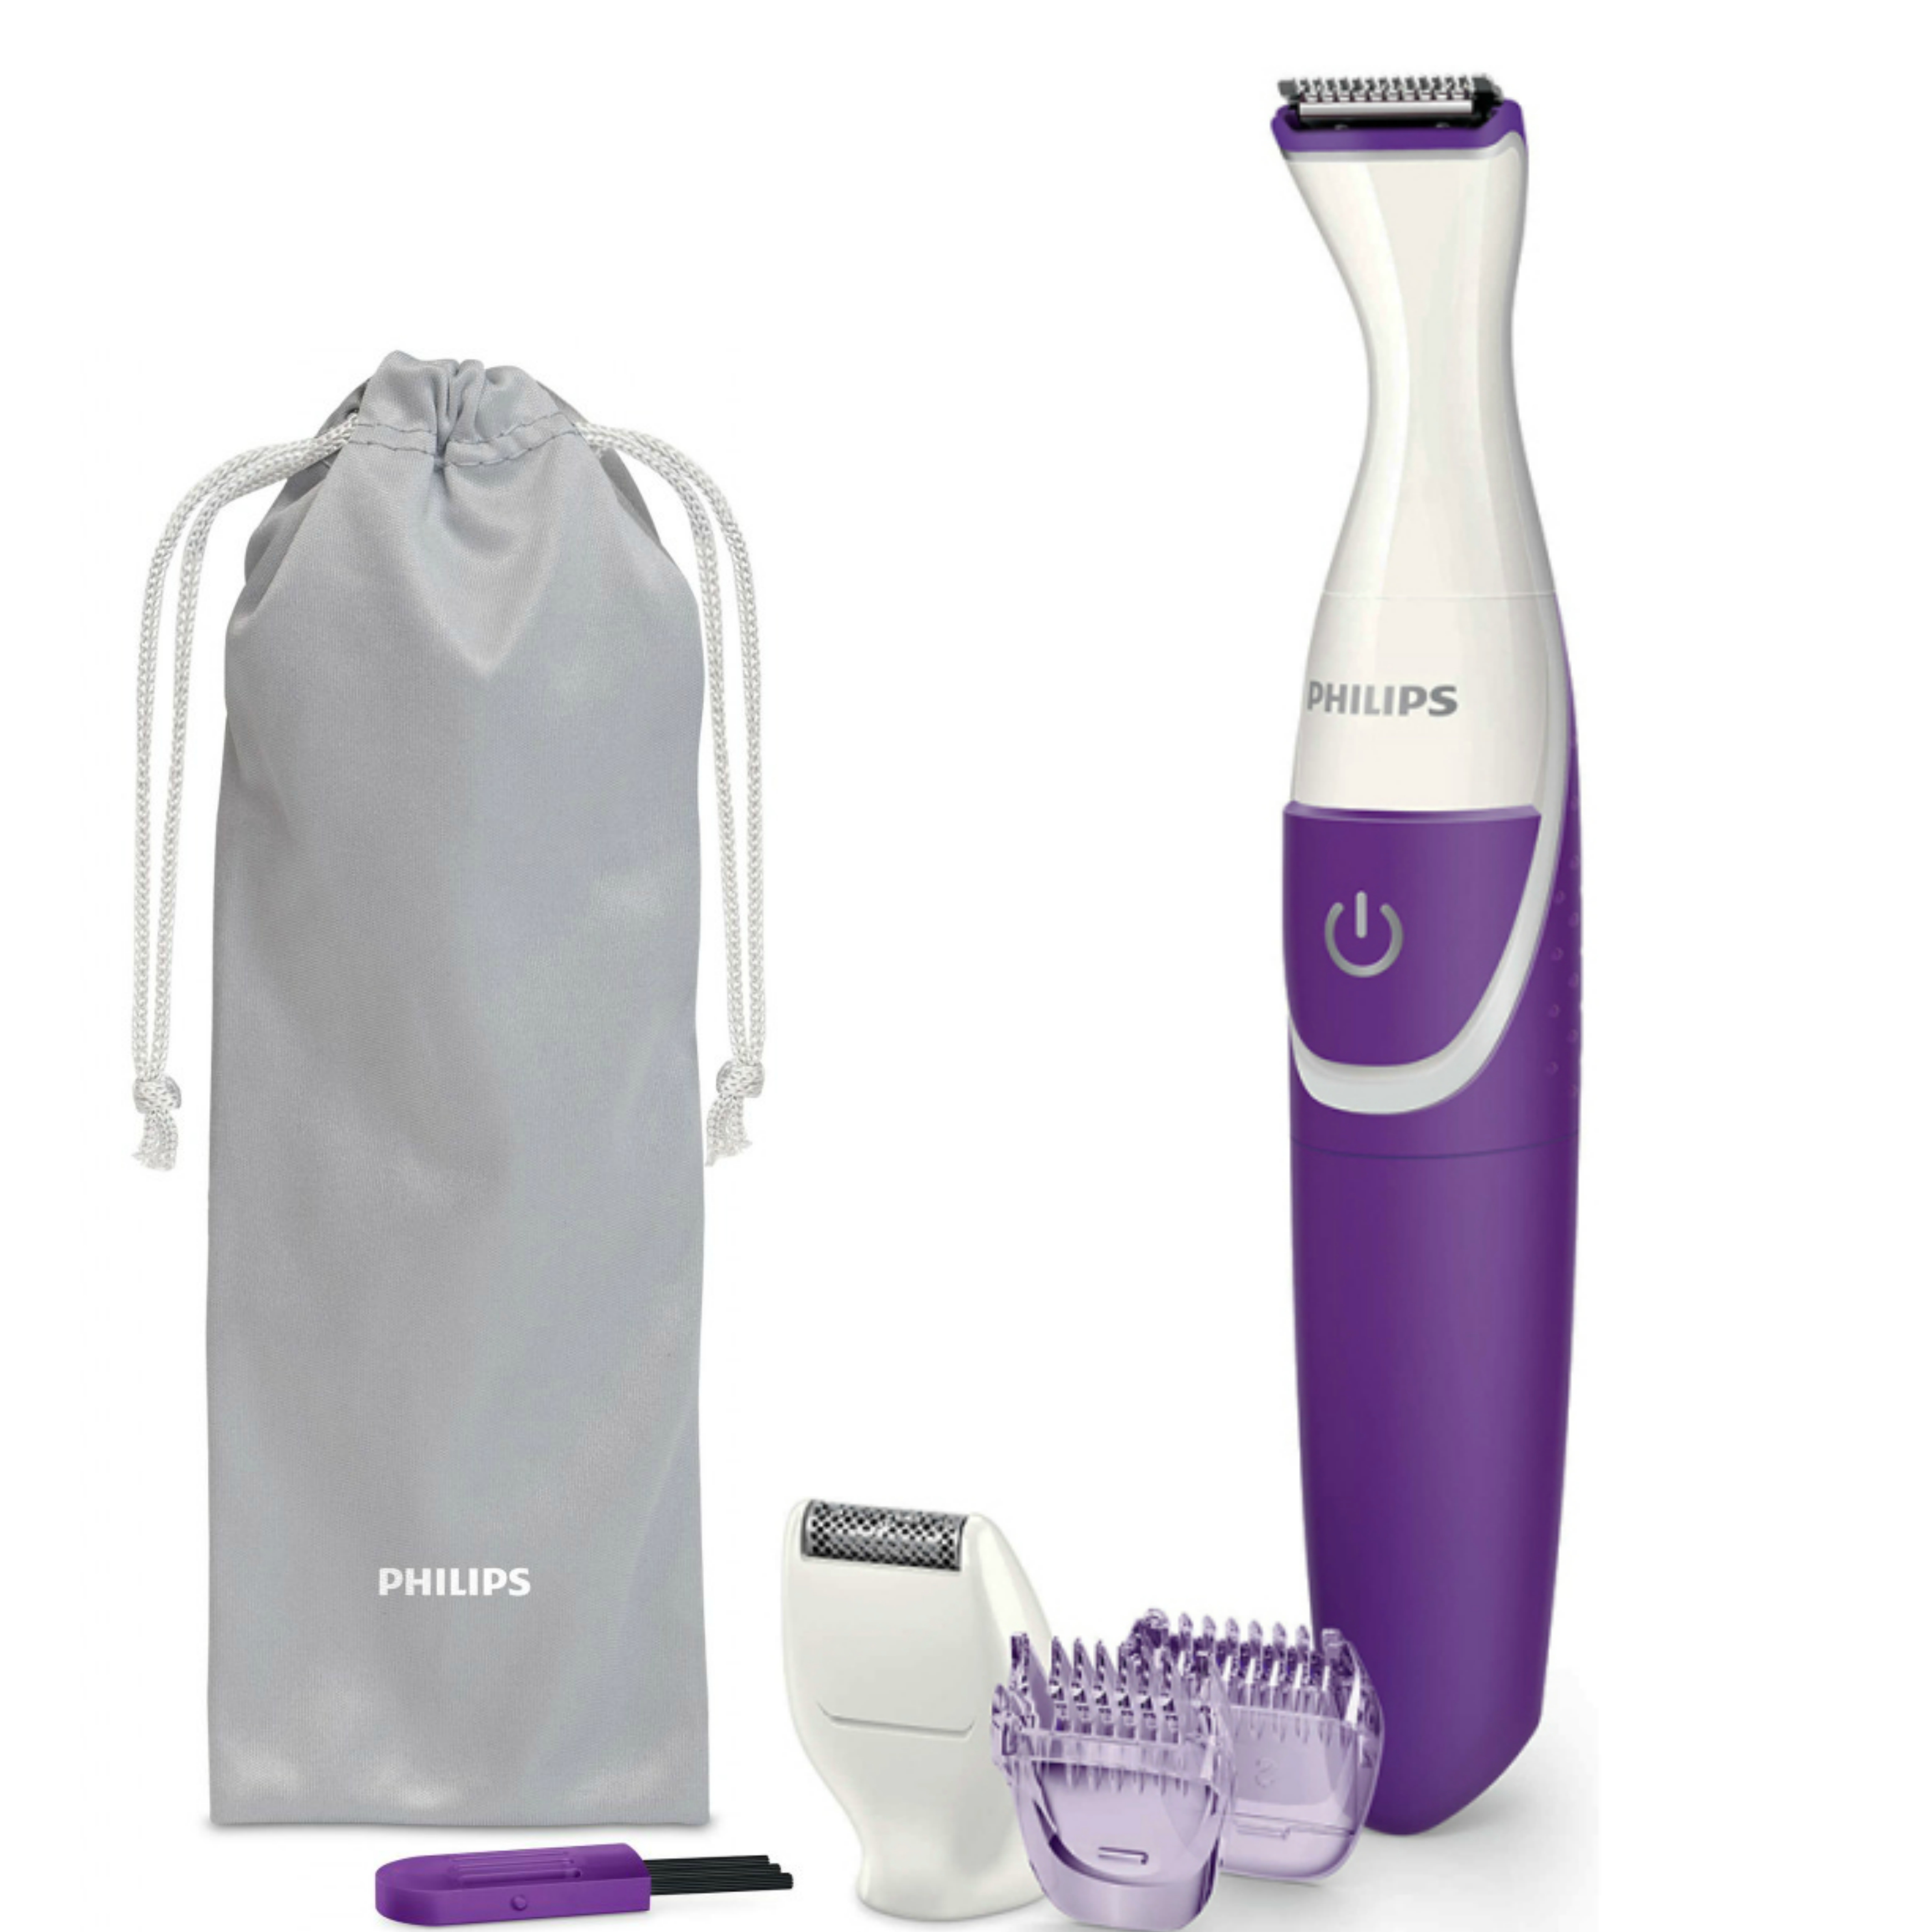 Philips BRT383/15 Ladies Bikini Genie Easy Hair Trimmer/Shaver|Wet & Dry|Purple